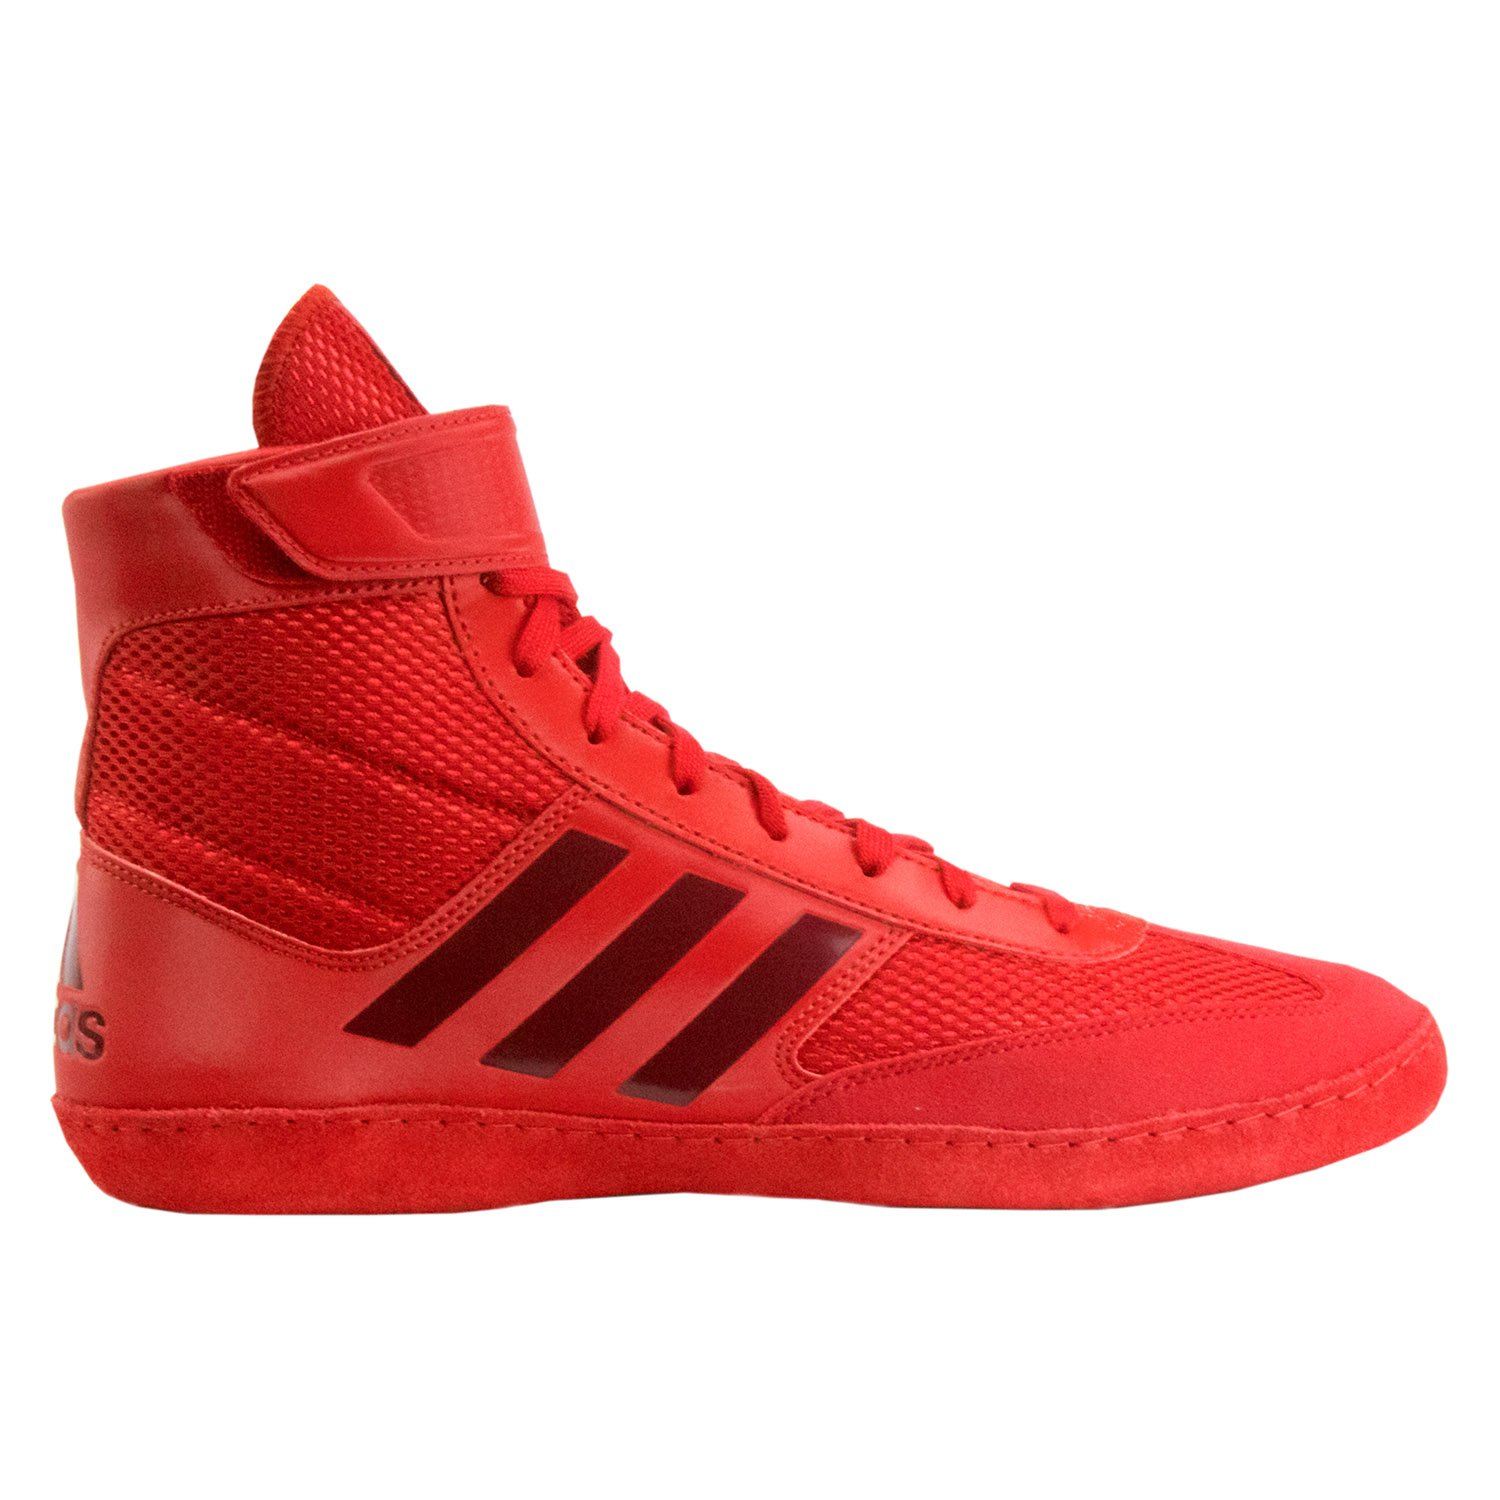 Men's/Women's adidas Men's B07BHYNBVM Combat Speed.5, B07BHYNBVM Men's Wrestling Great variety Modern and stylish fashion Complete specifications cb7ff7